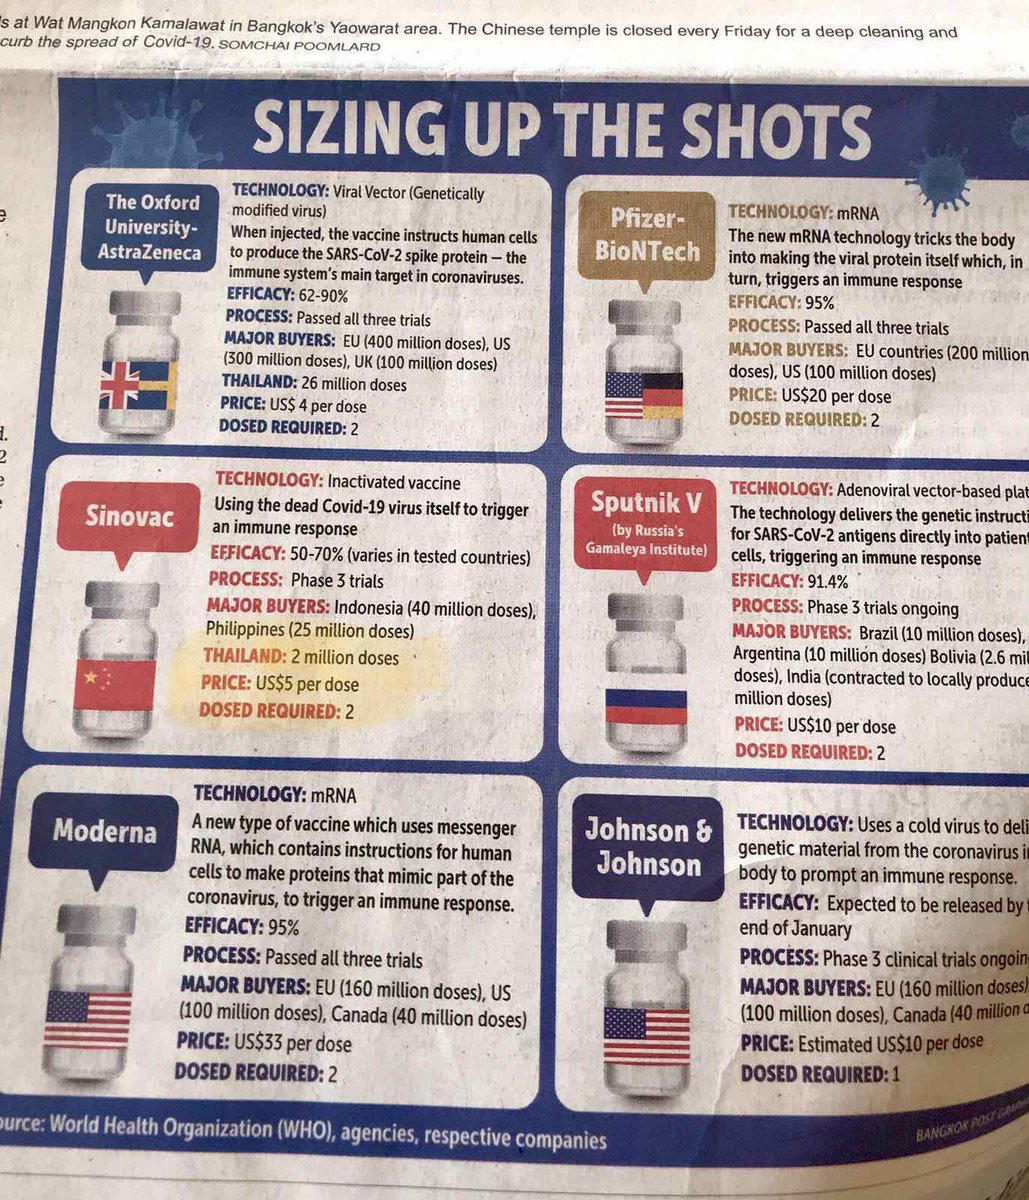 Front page of Bangkok Post newspaper January 16, 2021.   Sinovac US$5 per dose vs Indonesia at US $ 17 vs Philippines of US $ 36   Why is Sinovac cheaper in Indonesia and Thailand ?